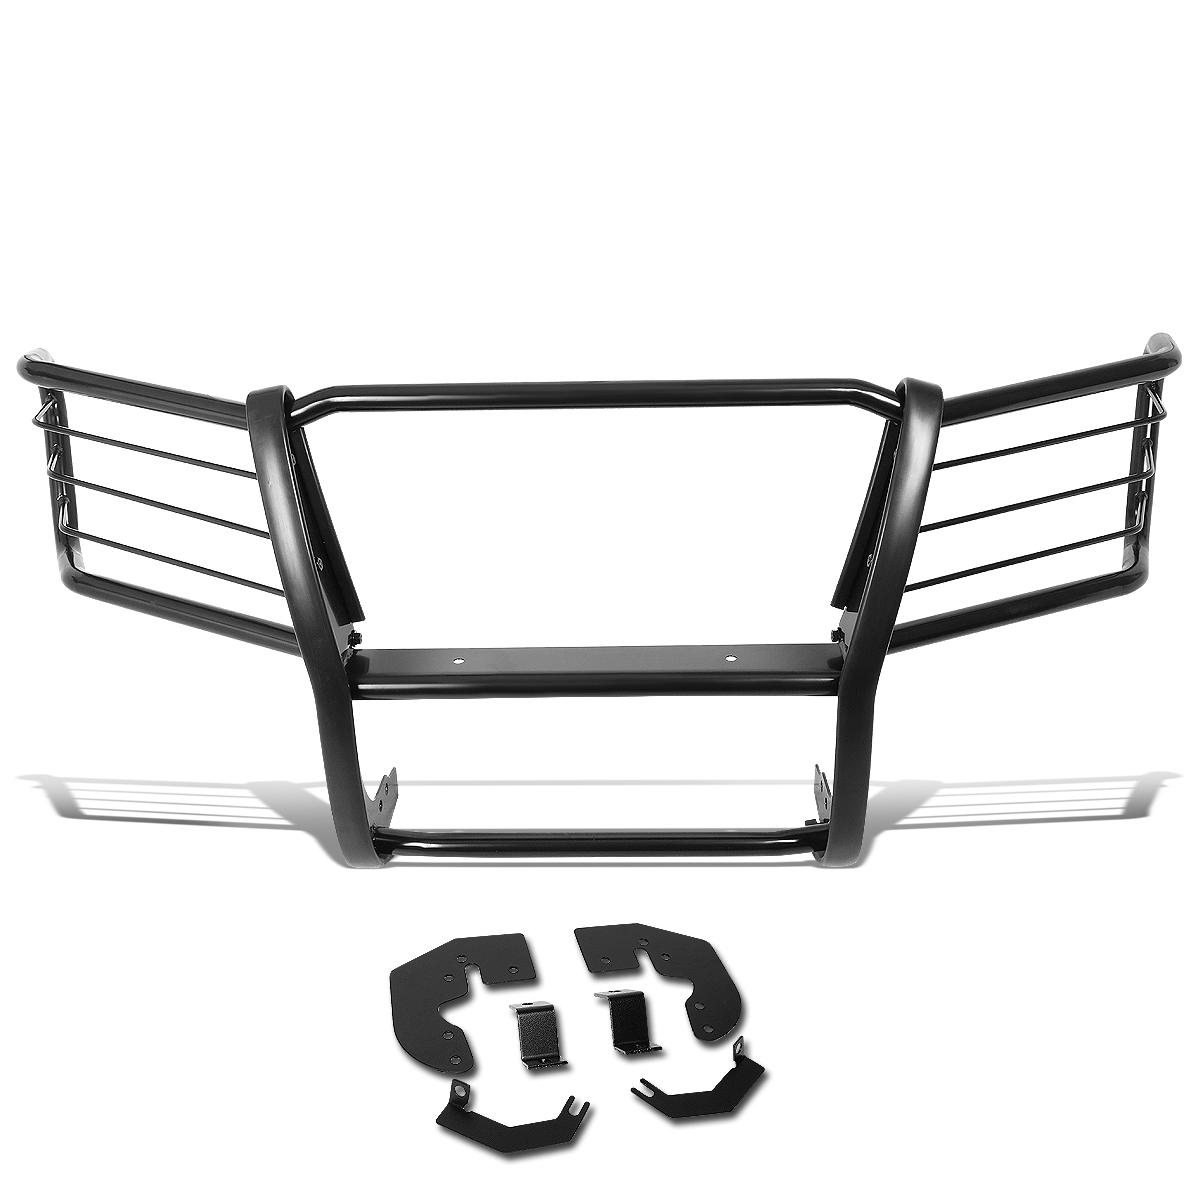 Mild Steel Front Bumper Headlight//Grille Brush Guard Replacement for 04-12 Chevy Colorado//GMC Canyon